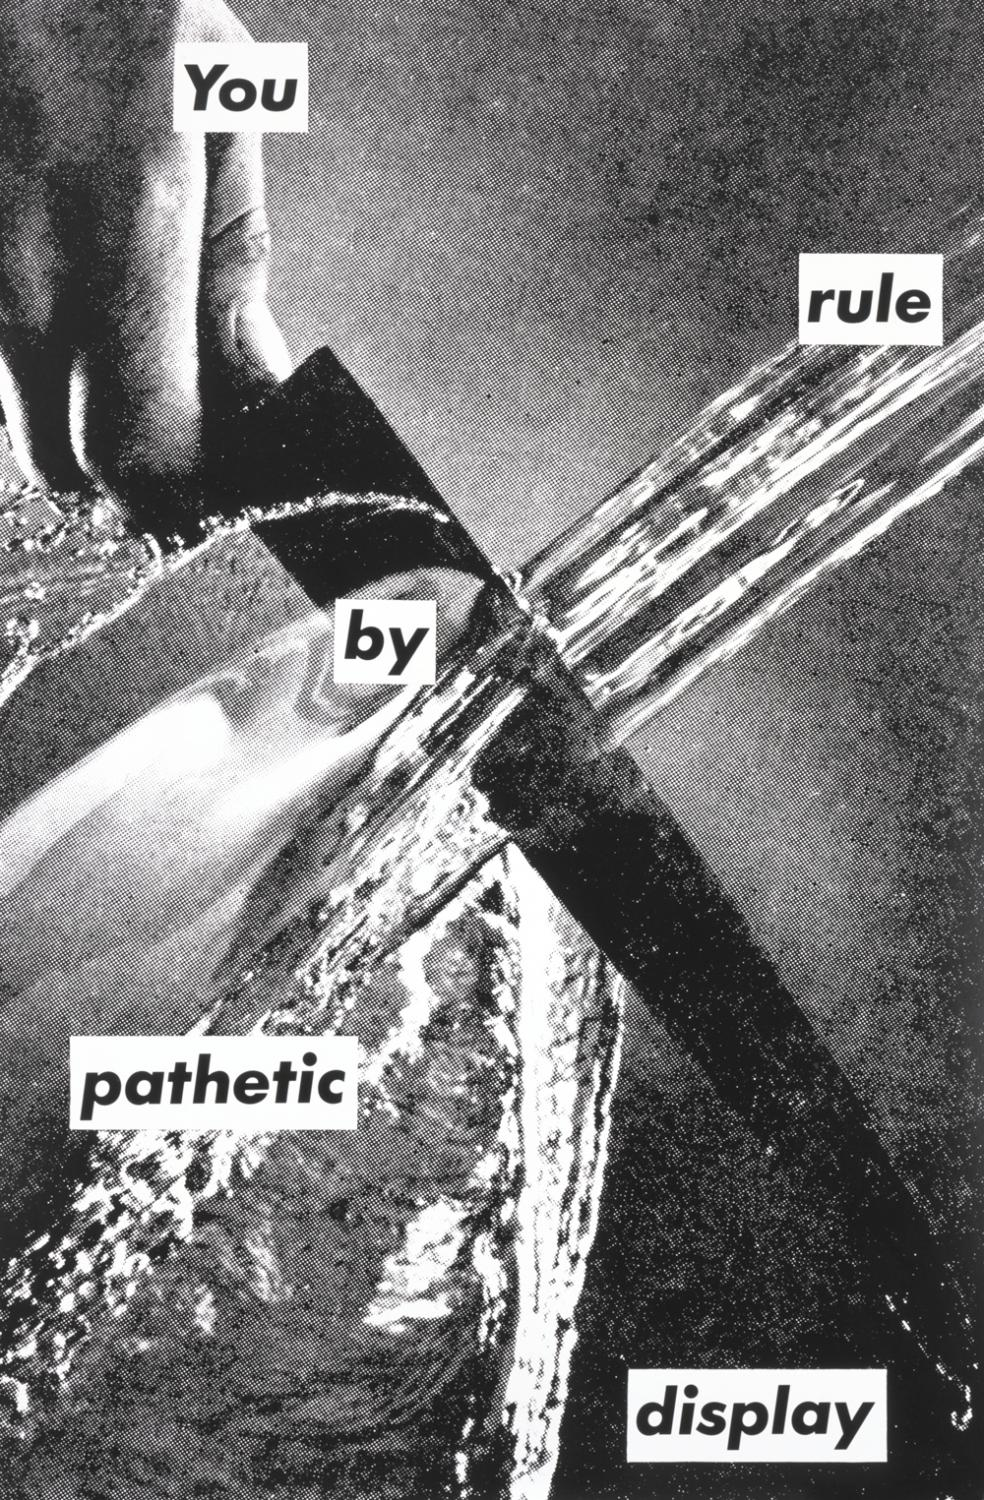 Barbara Kruger. Untitled (You Rule by Pathetic Display), 1982. Photo offset lithograph, serigraph. 73 x 49 inches. Art Acquisition Fund 1986-36-1.